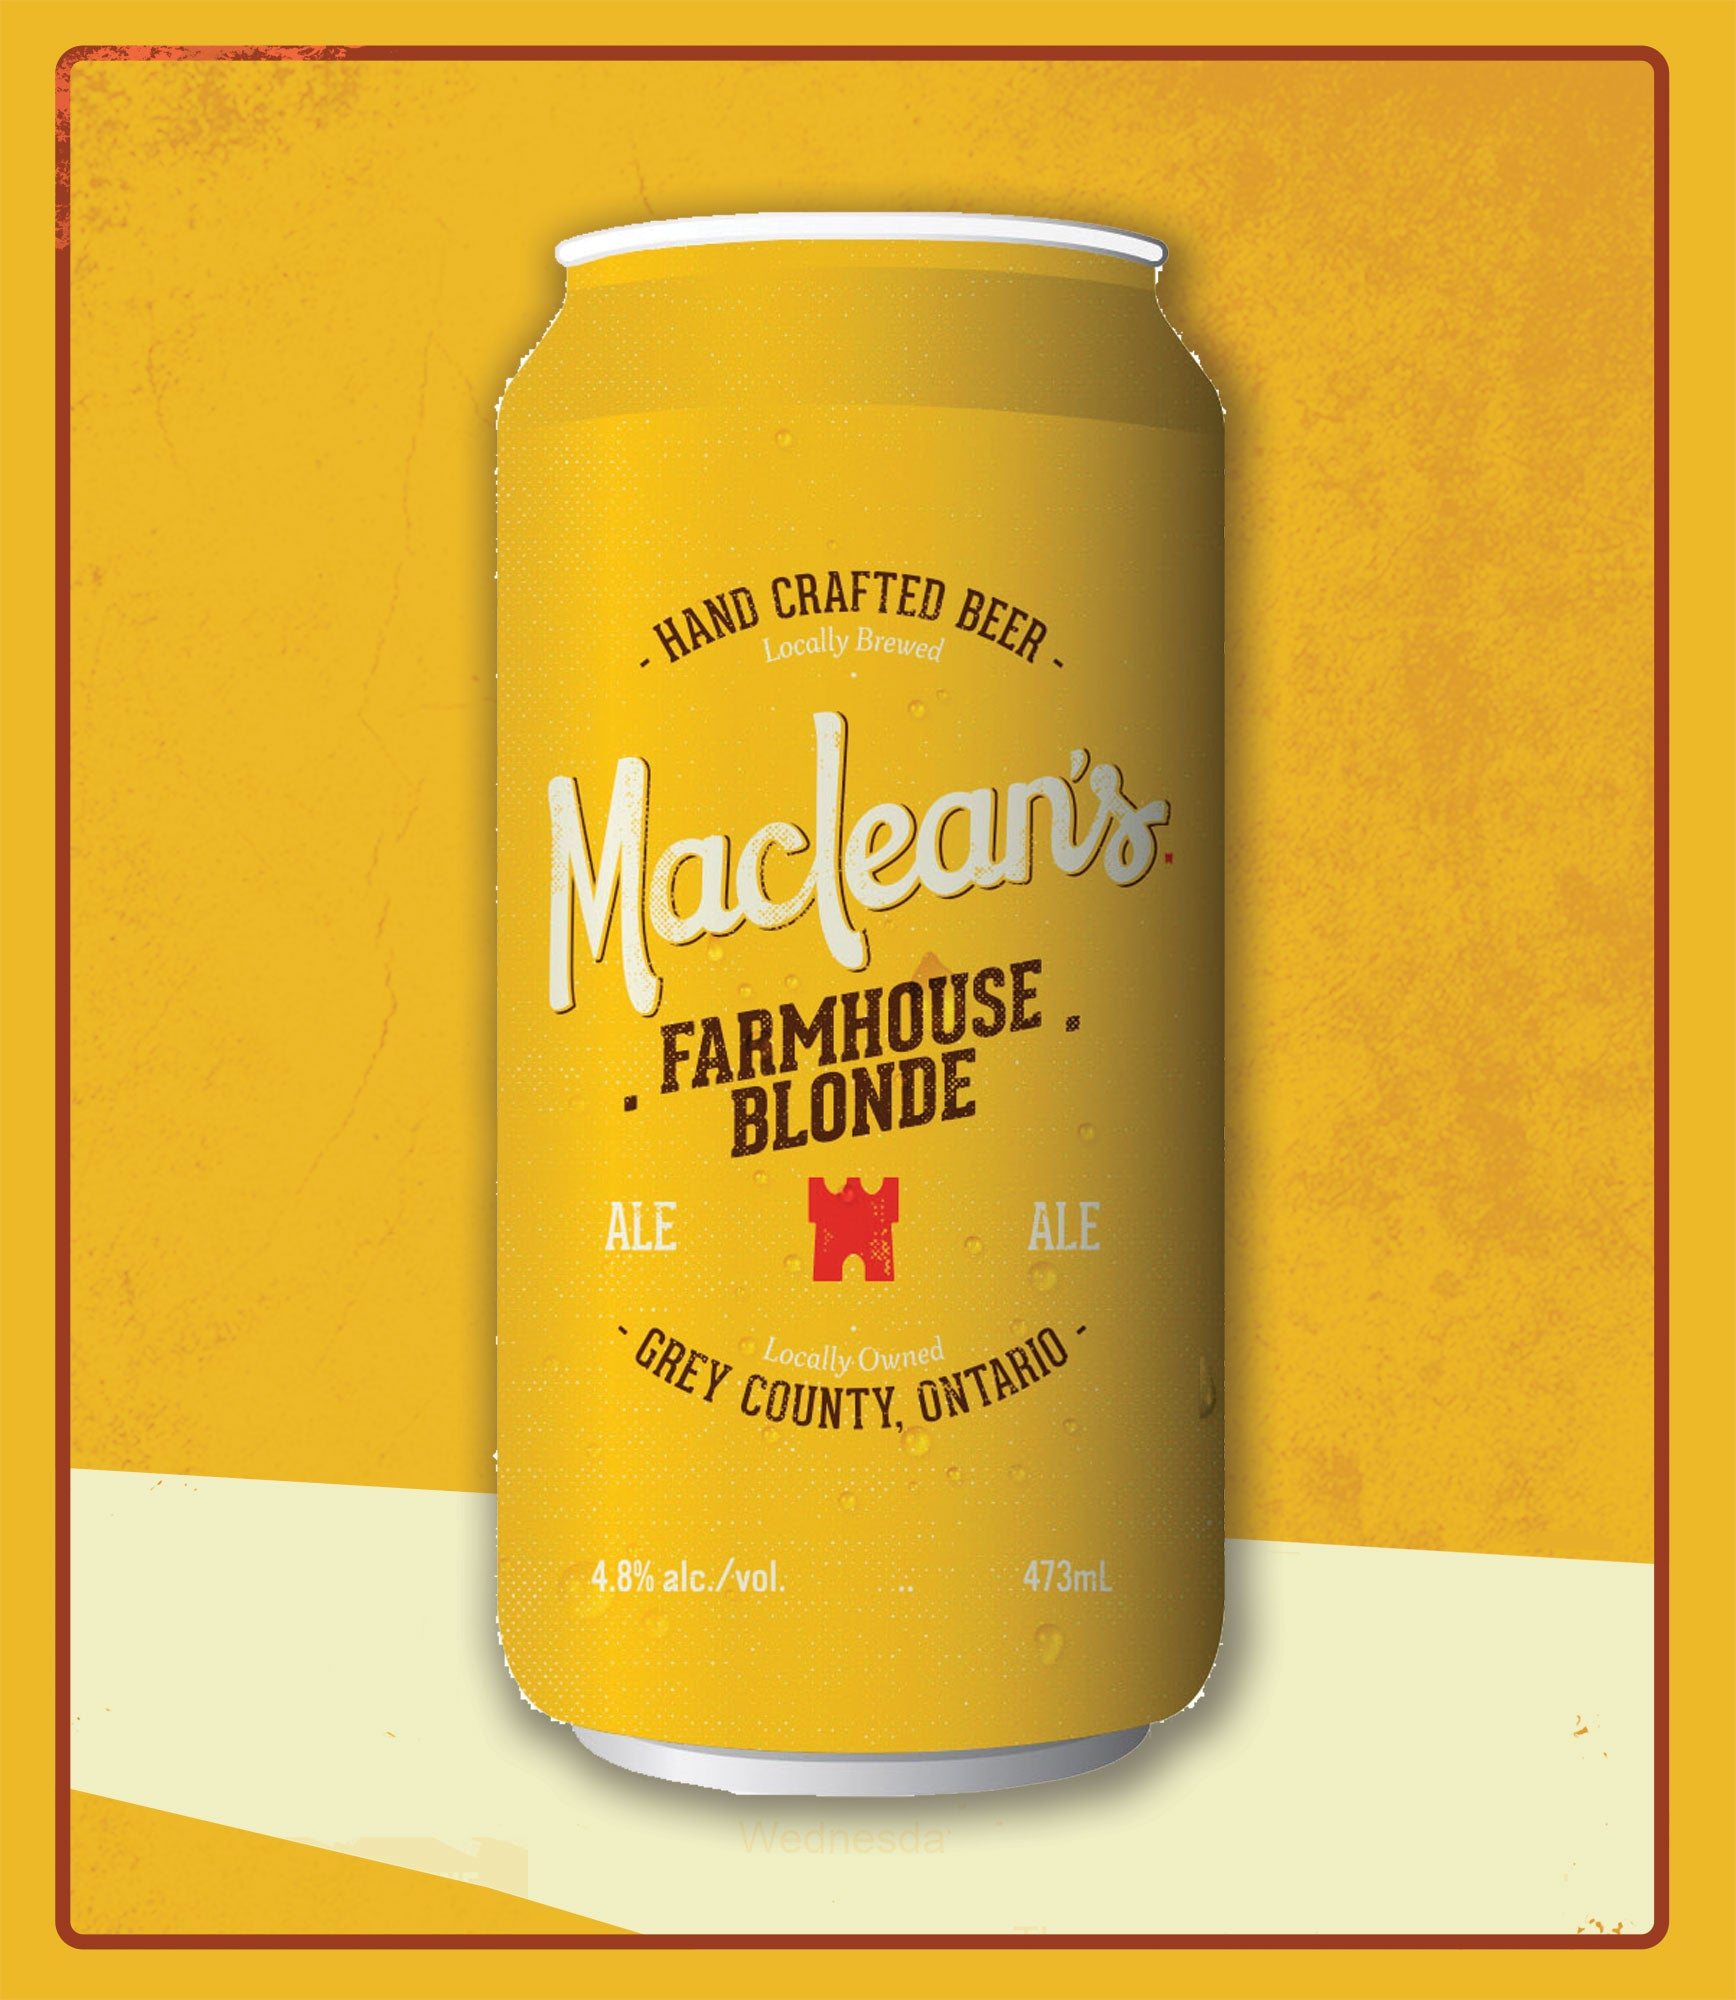 Farmhouse Blonde